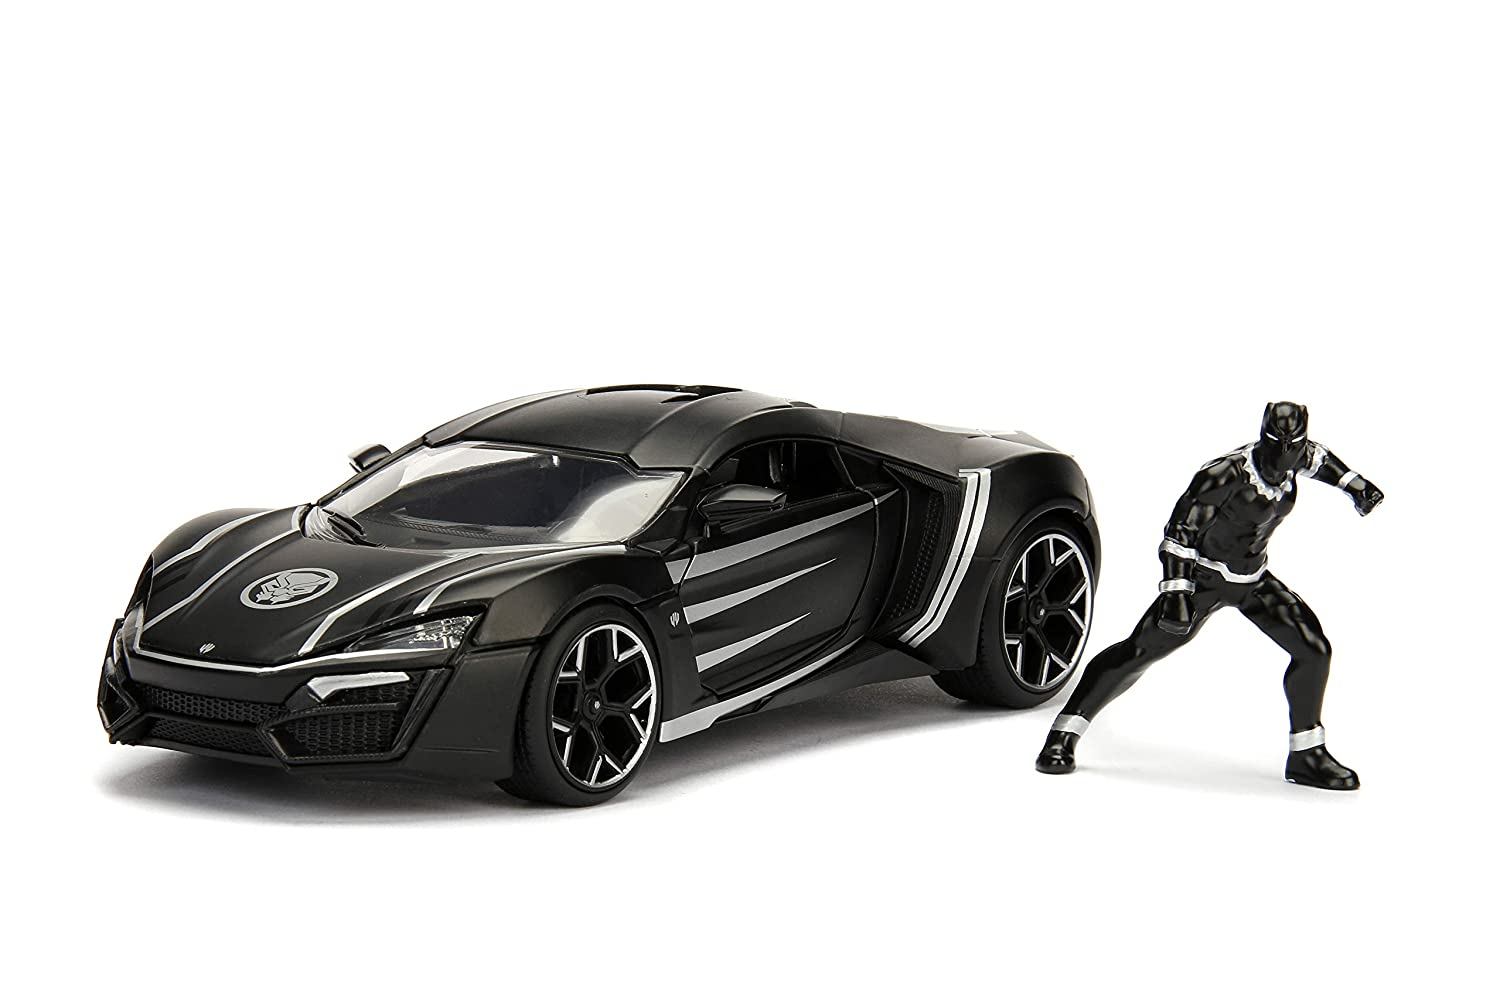 """Amazon.com: Jada Toys Marvel Black Panther & W Motors Lykan Hypersport DIE-CAST Car, 1: 24 Scale Vehicle & 2.75"""" Collectible Metal Figurine: Toys & Games"""